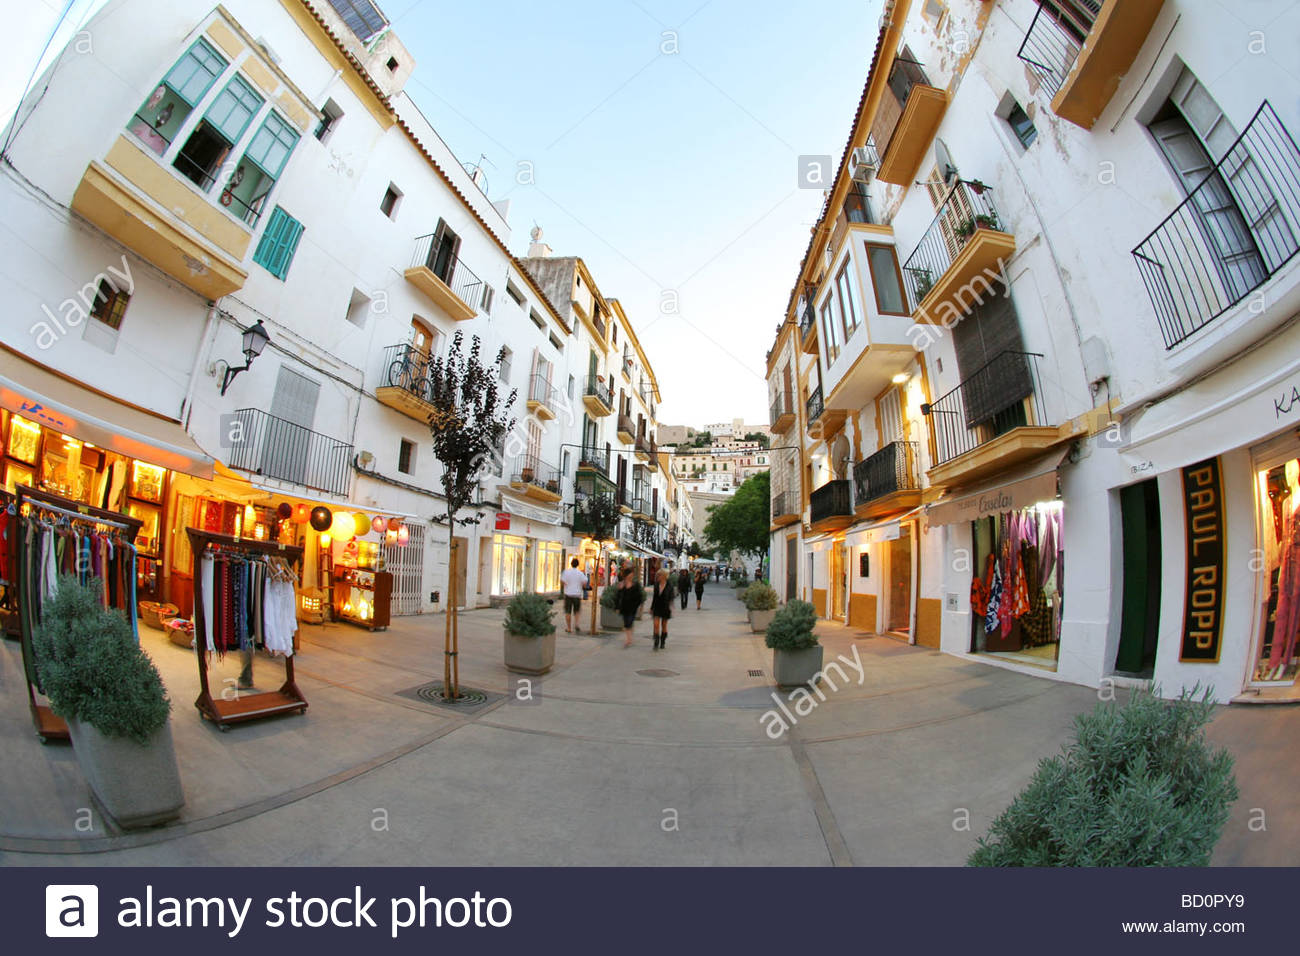 shops and building in ibiza town ibiza stock photo 25218909 alamy. Black Bedroom Furniture Sets. Home Design Ideas